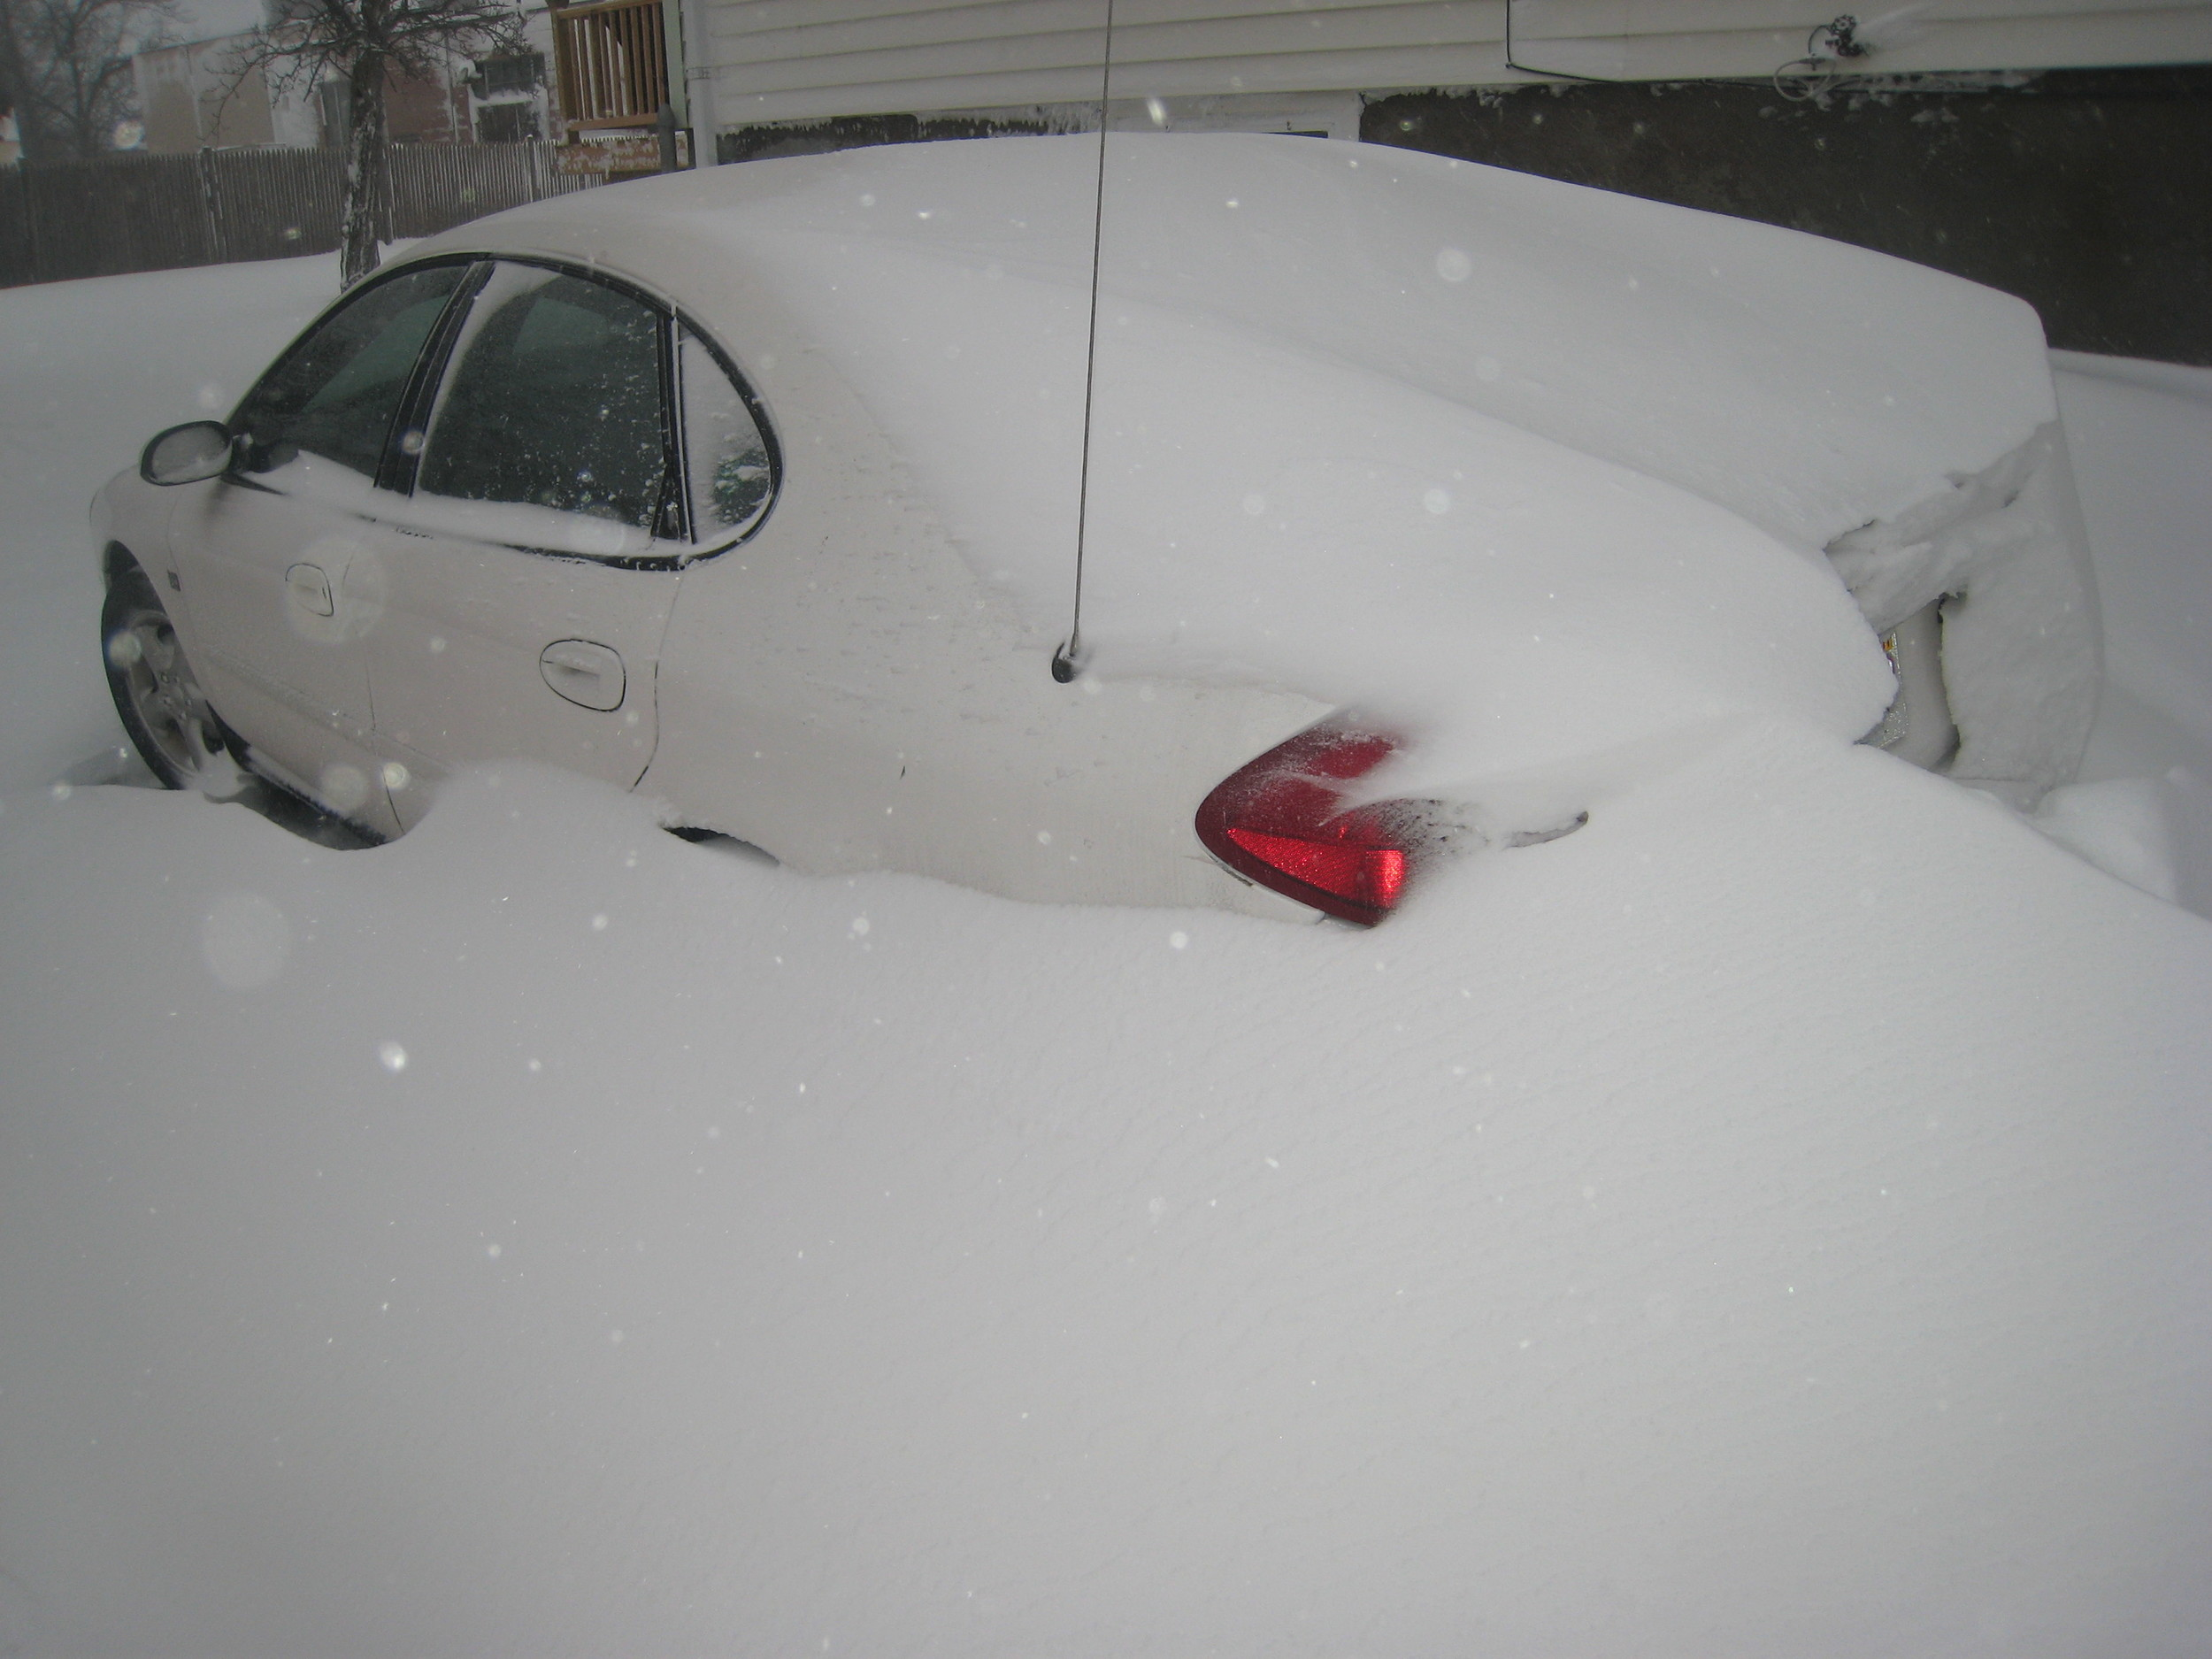 Save them the aggravation of shoveling out of this to go get you.